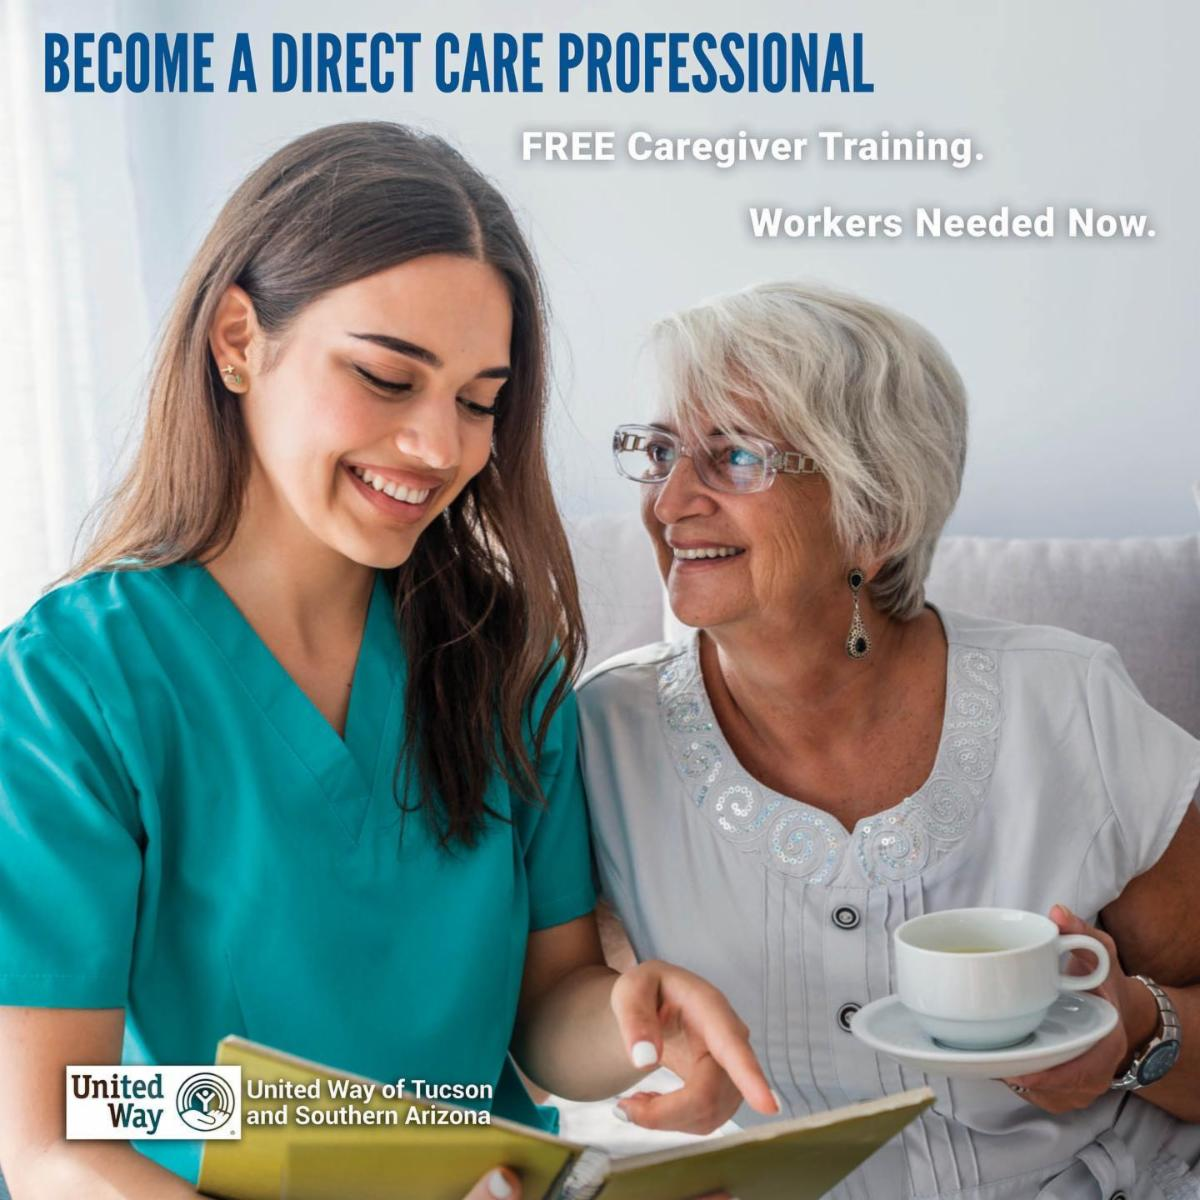 Become a Direct Care Professional